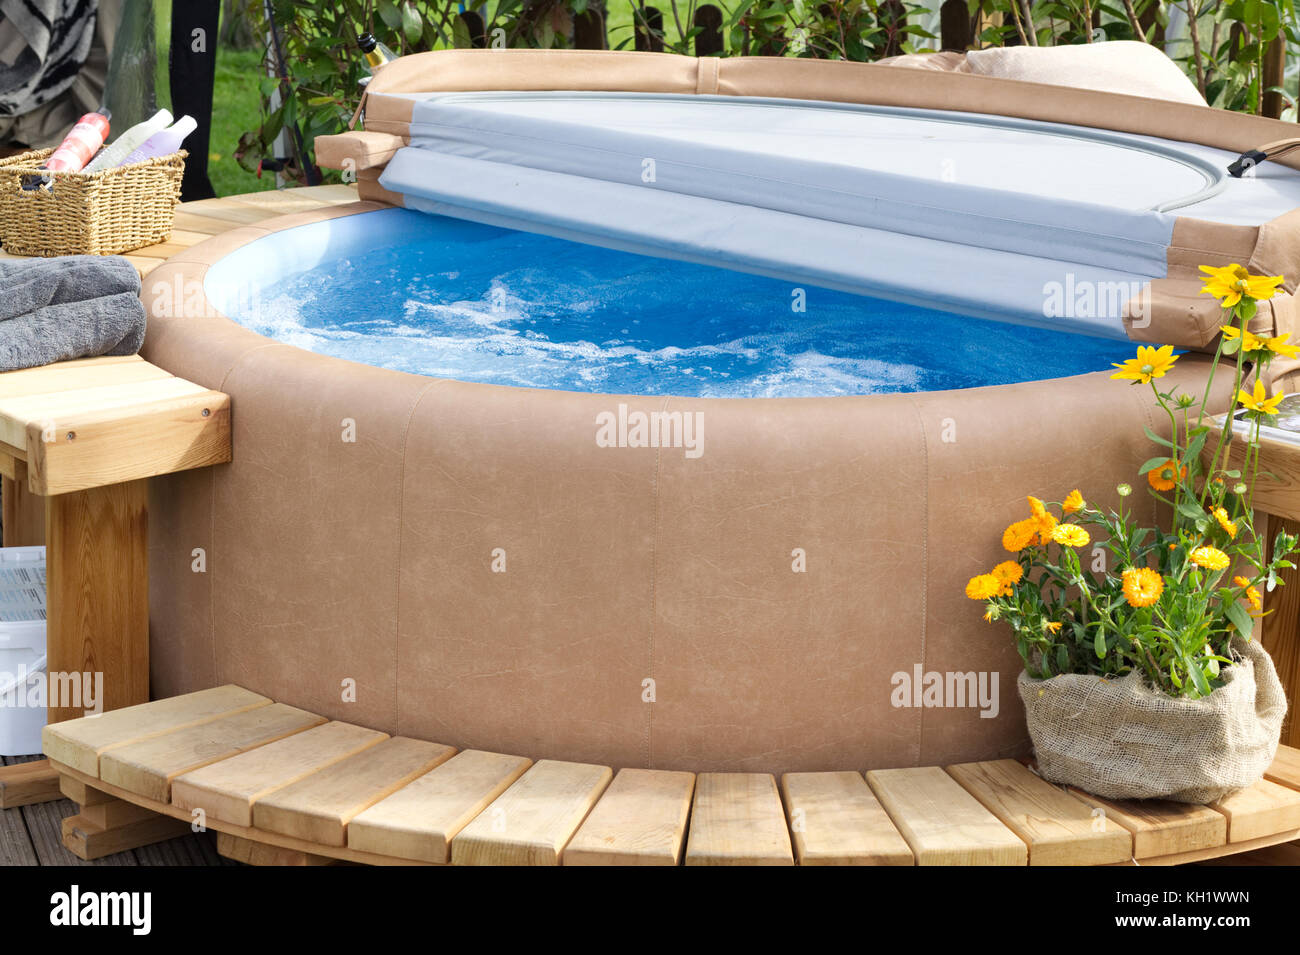 hot tub with wooden decking in the garden Stock Photo: 165384737 - Alamy